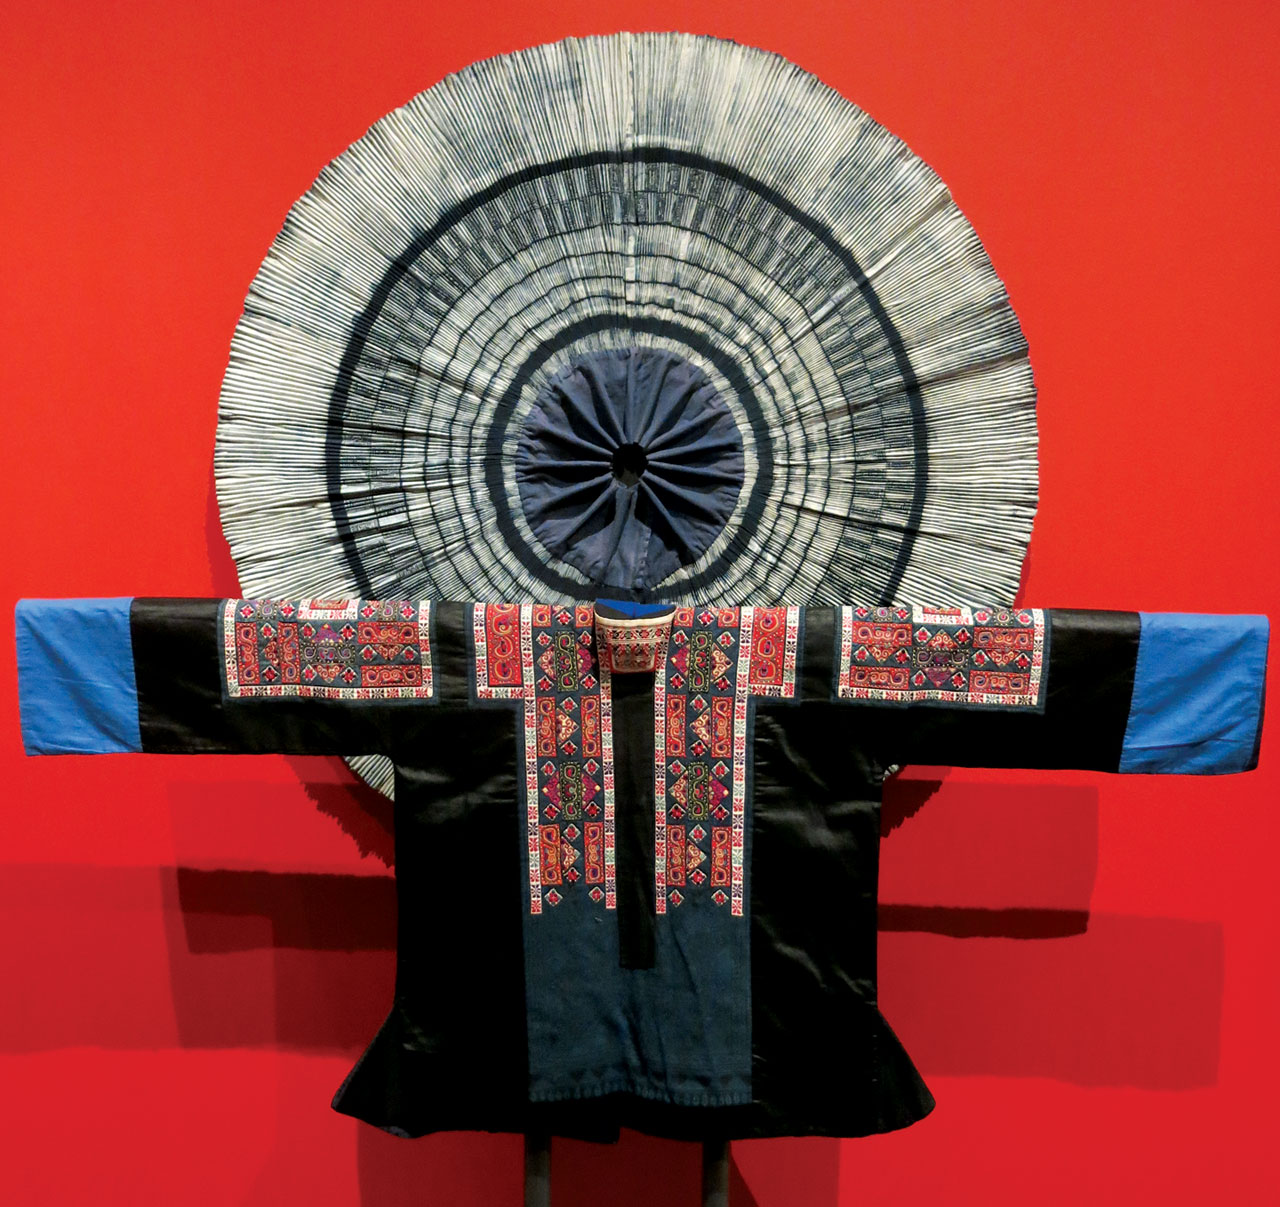 MIAO WOMAN'S JACKET of cotton and silk, embroidered, Guiding County, Guizhou Province, China, mid-twentieth century. Behind the jacket is a pleated, indigo-dyed Miao woman's skirt.  Photograph by Patrick R. Benesh-Liu.